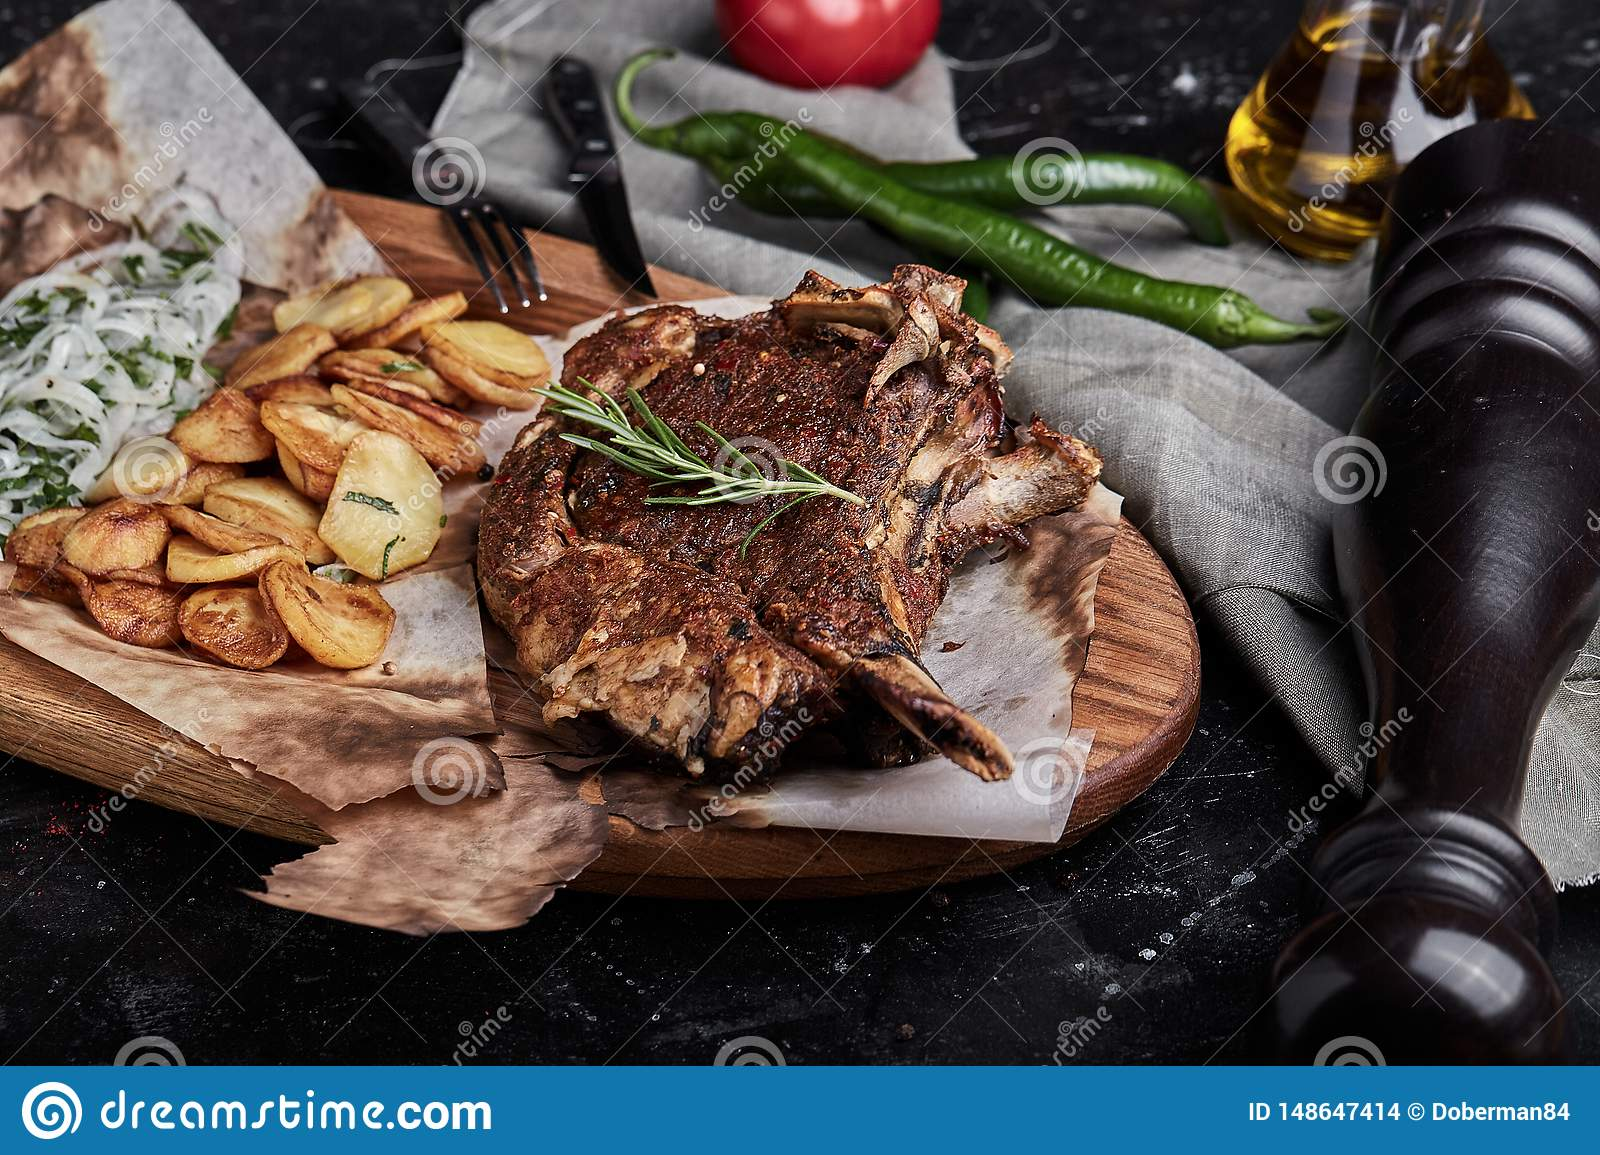 Grain fed Grilled Tomahawk Beef steak with fried potato wedge